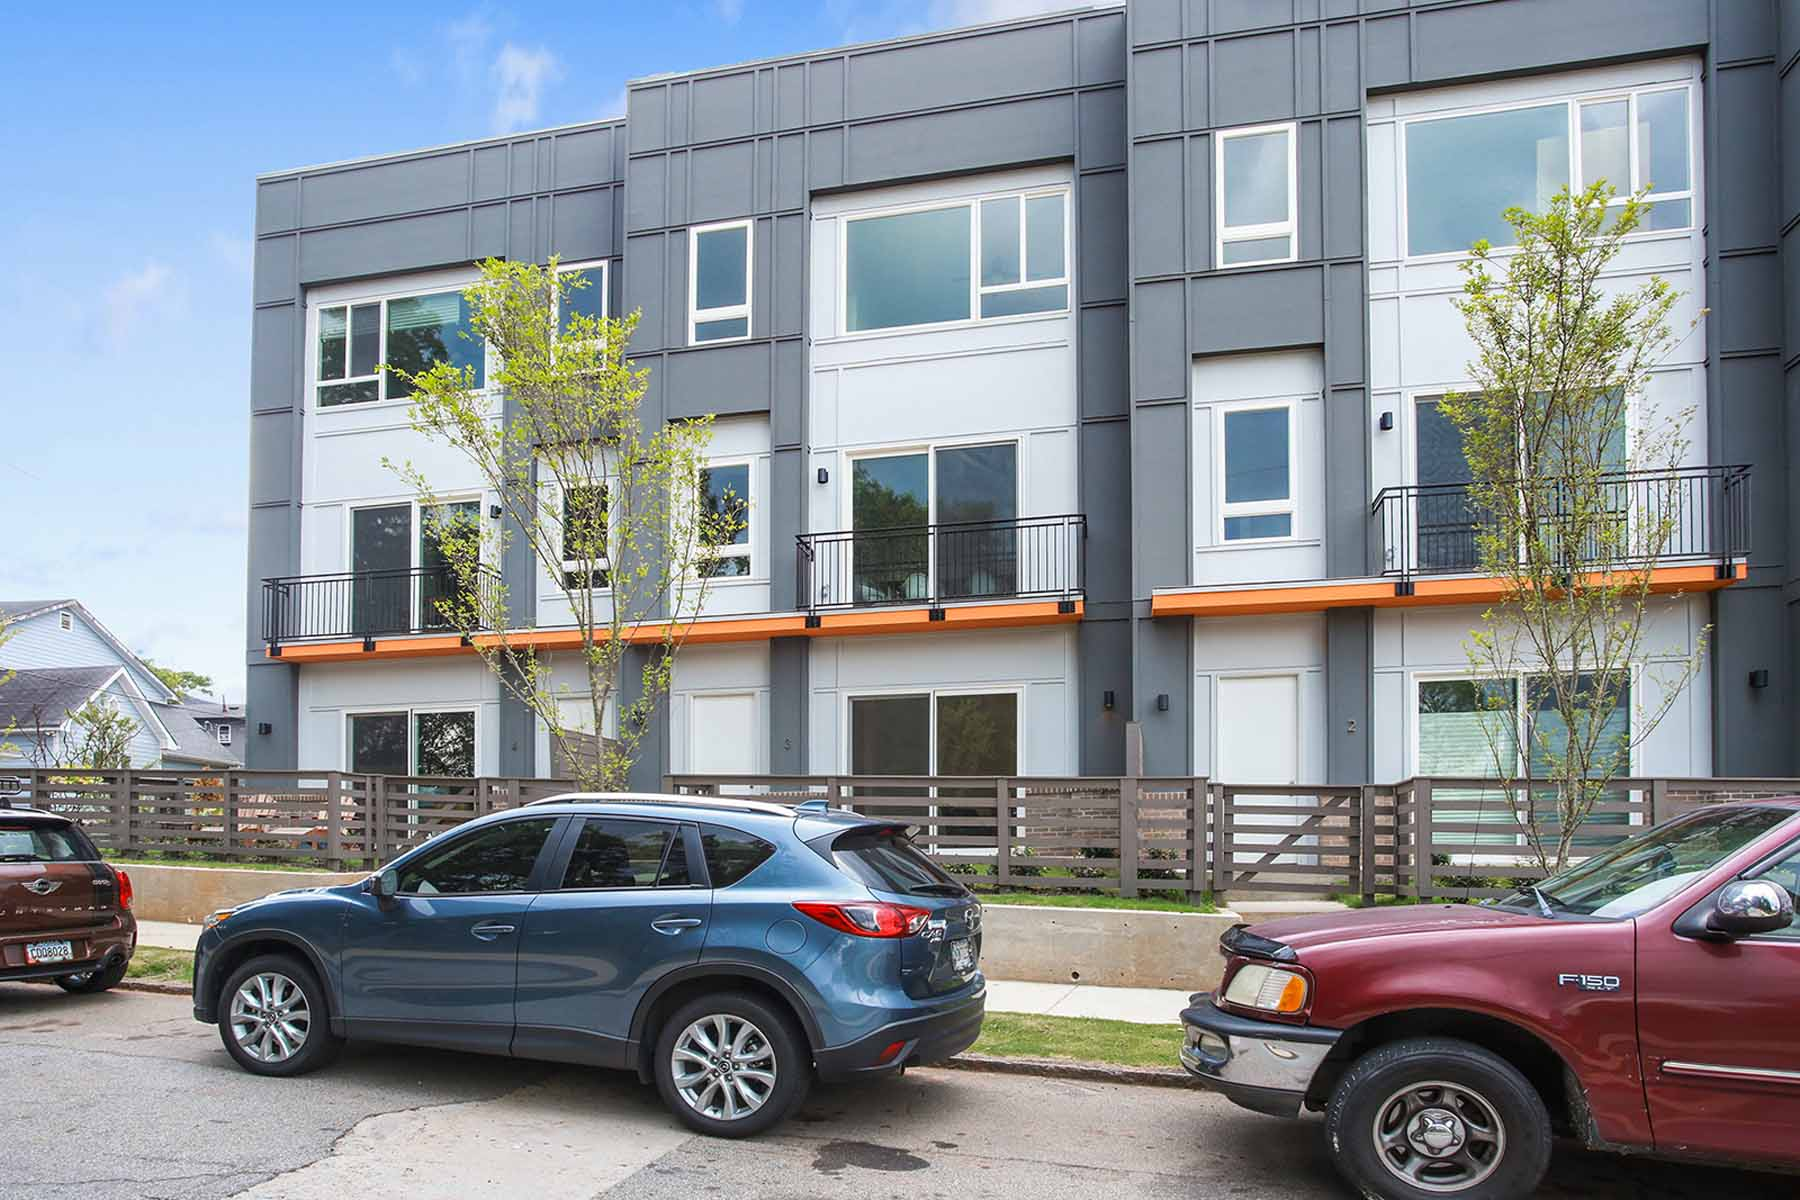 Таунхаус для того Продажа на The Edge On Lucy Street 71 Lucy Street SE Unit 3 Old Fourth Ward, Atlanta, Джорджия, 30312 Соединенные Штаты